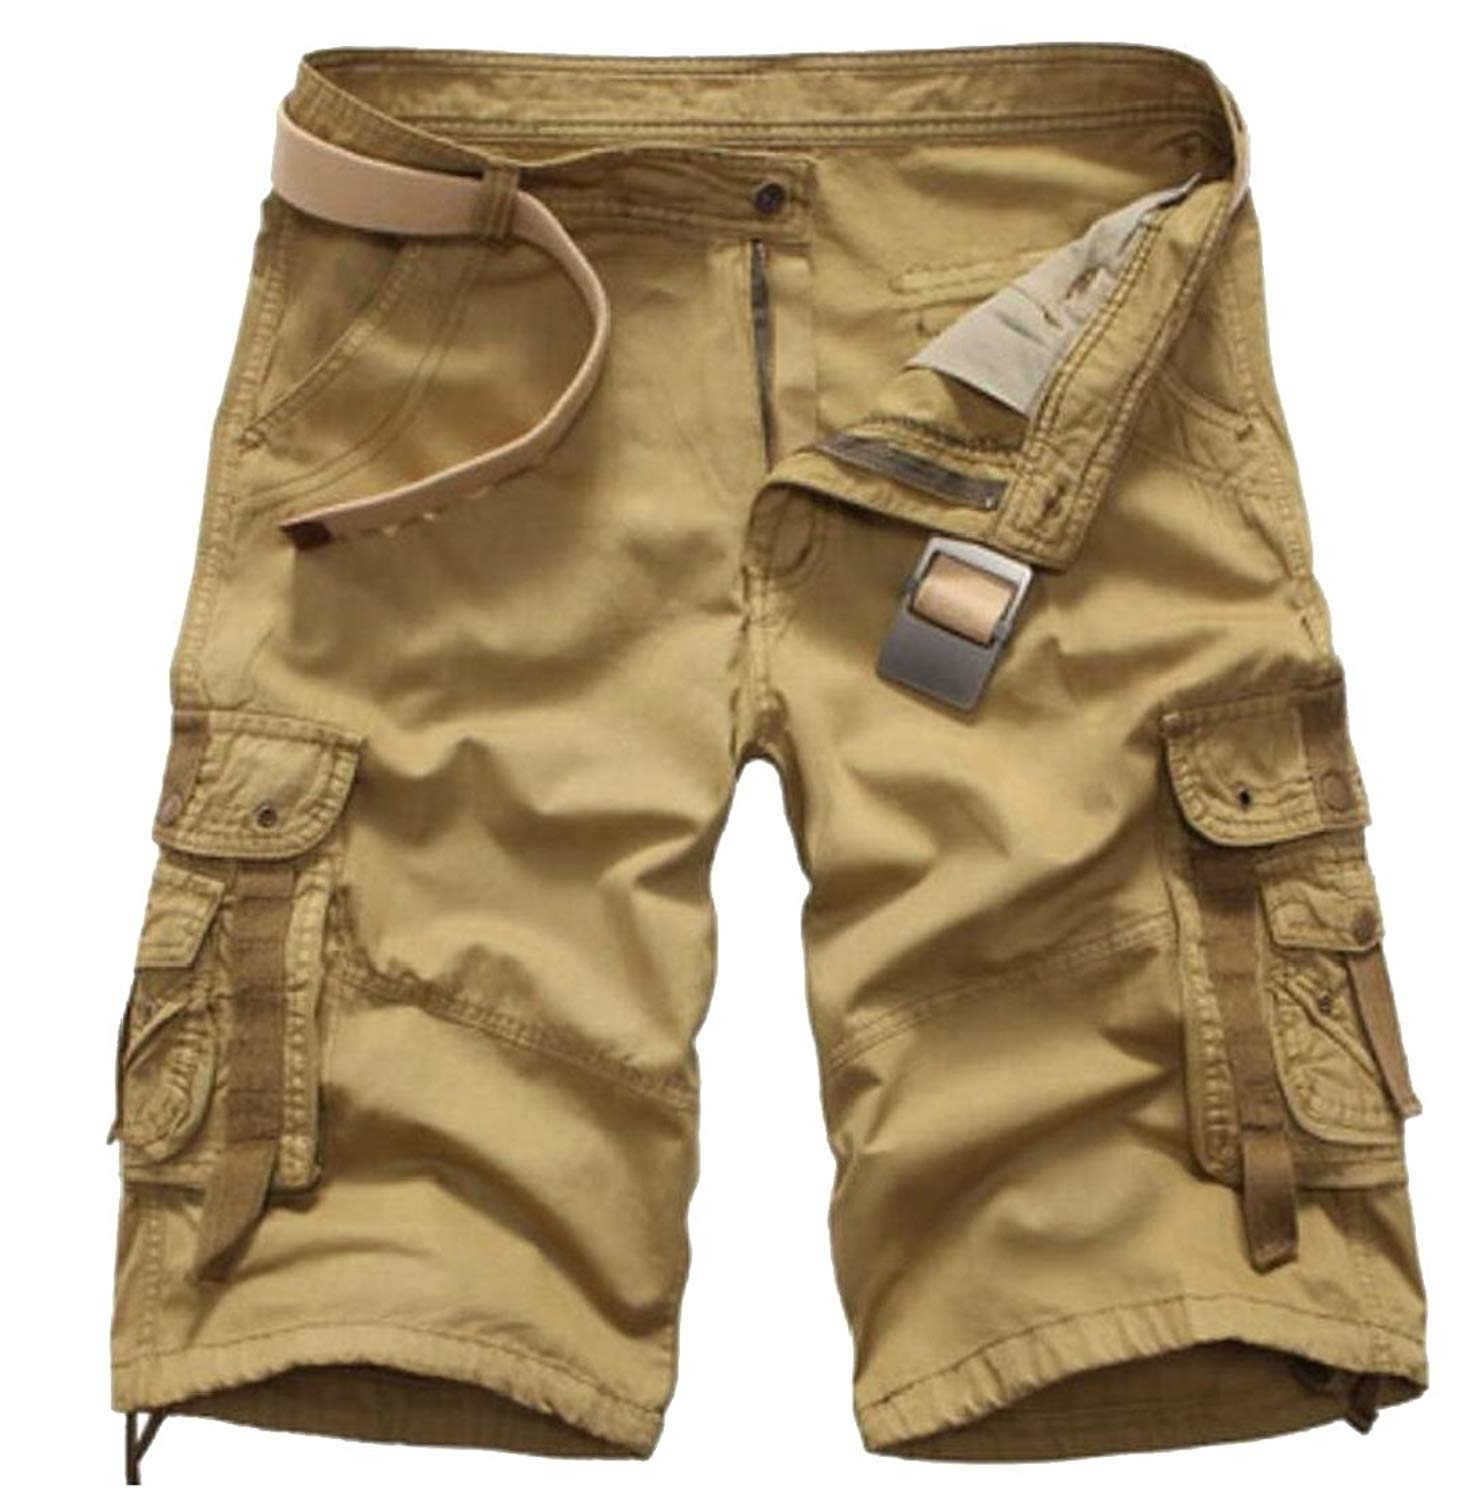 Generic Mens Fashion Casual Cargo Shorts,Mens Slim Fit Athletic Twill Cargo Shorts